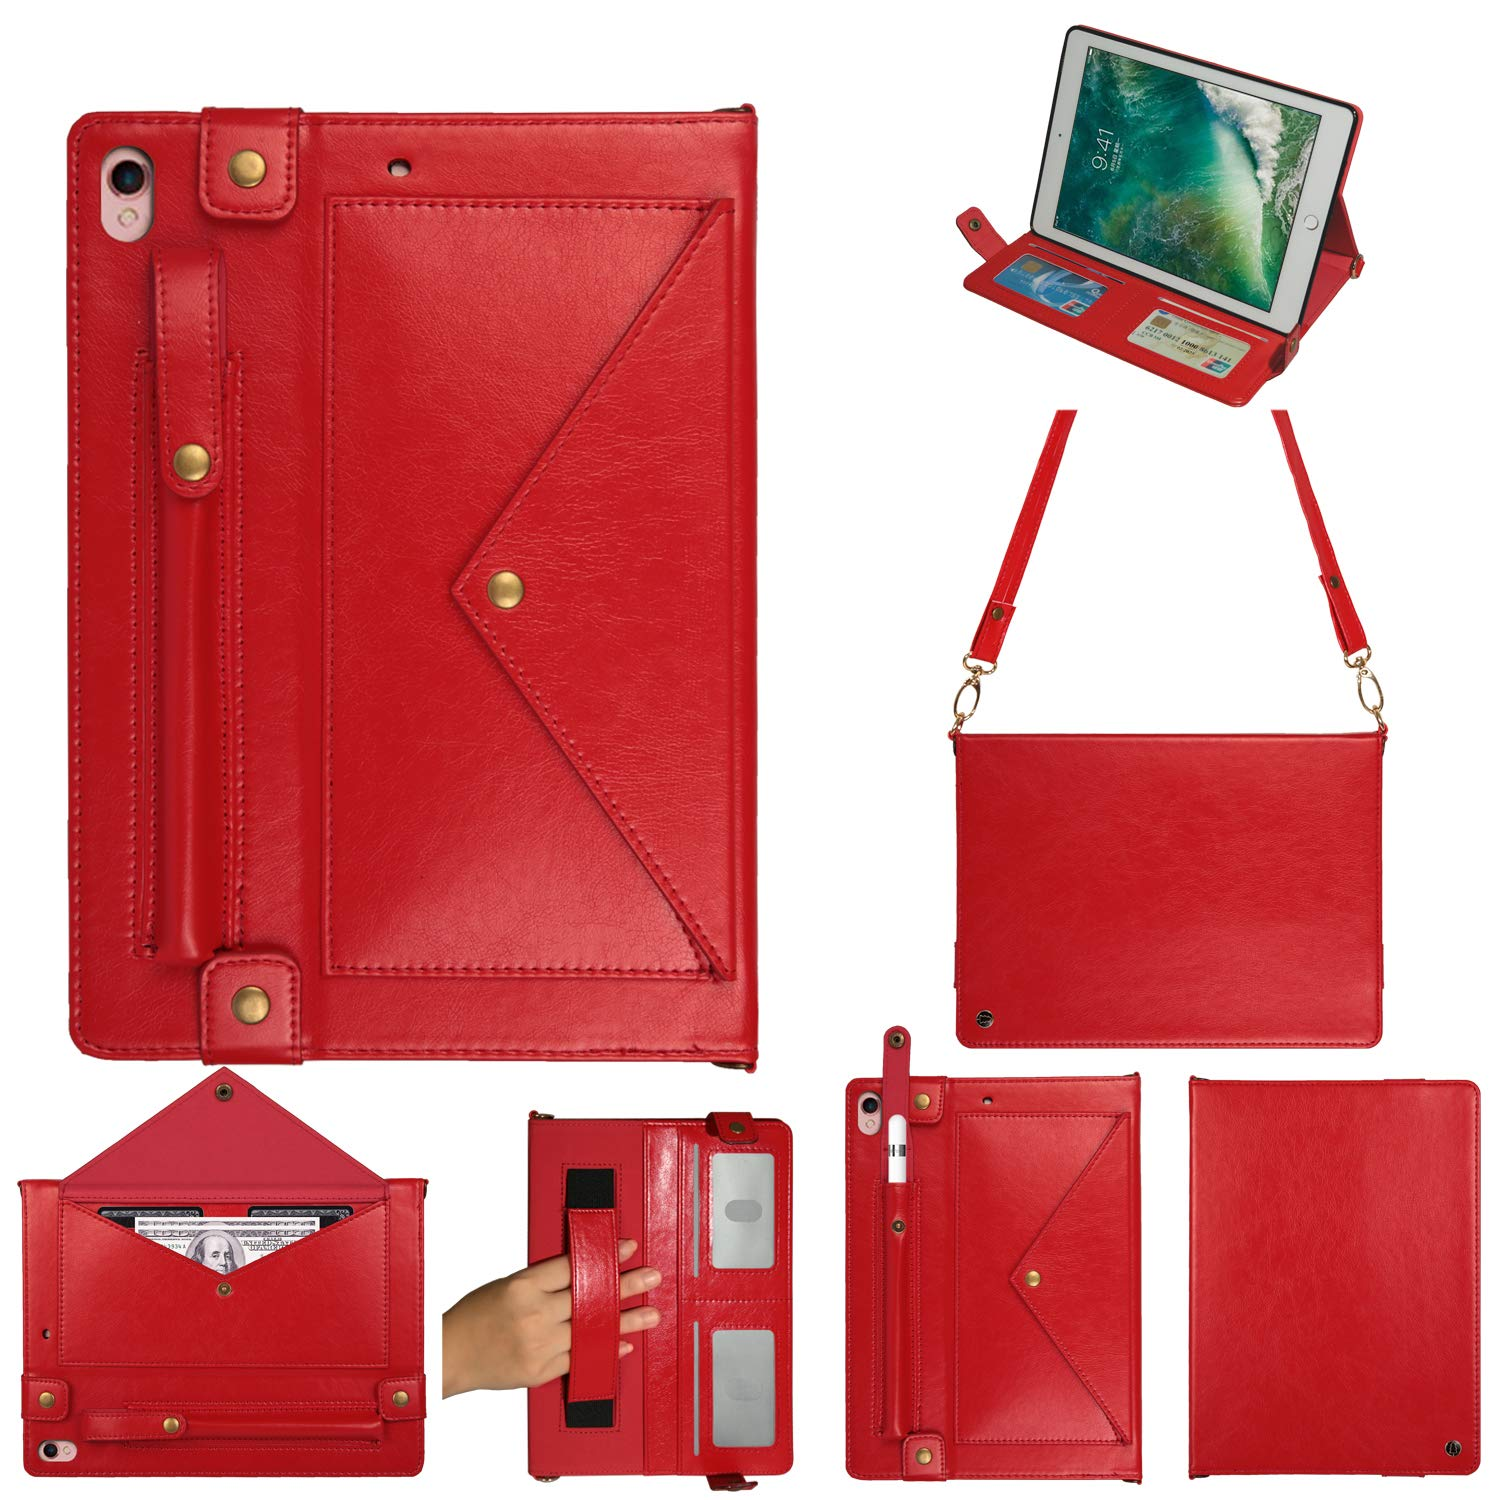 3rd Gen iPad Pro 12.9 Cover, Multi-function Wallet Protective Cover with Card Slot/Cash Pocket/Pen Holder/Hand &Shoulder Strap/Classic Buckle Closure Shoulder Bag Book Case for iPad Pro 12.9 2018,Red by TechCode